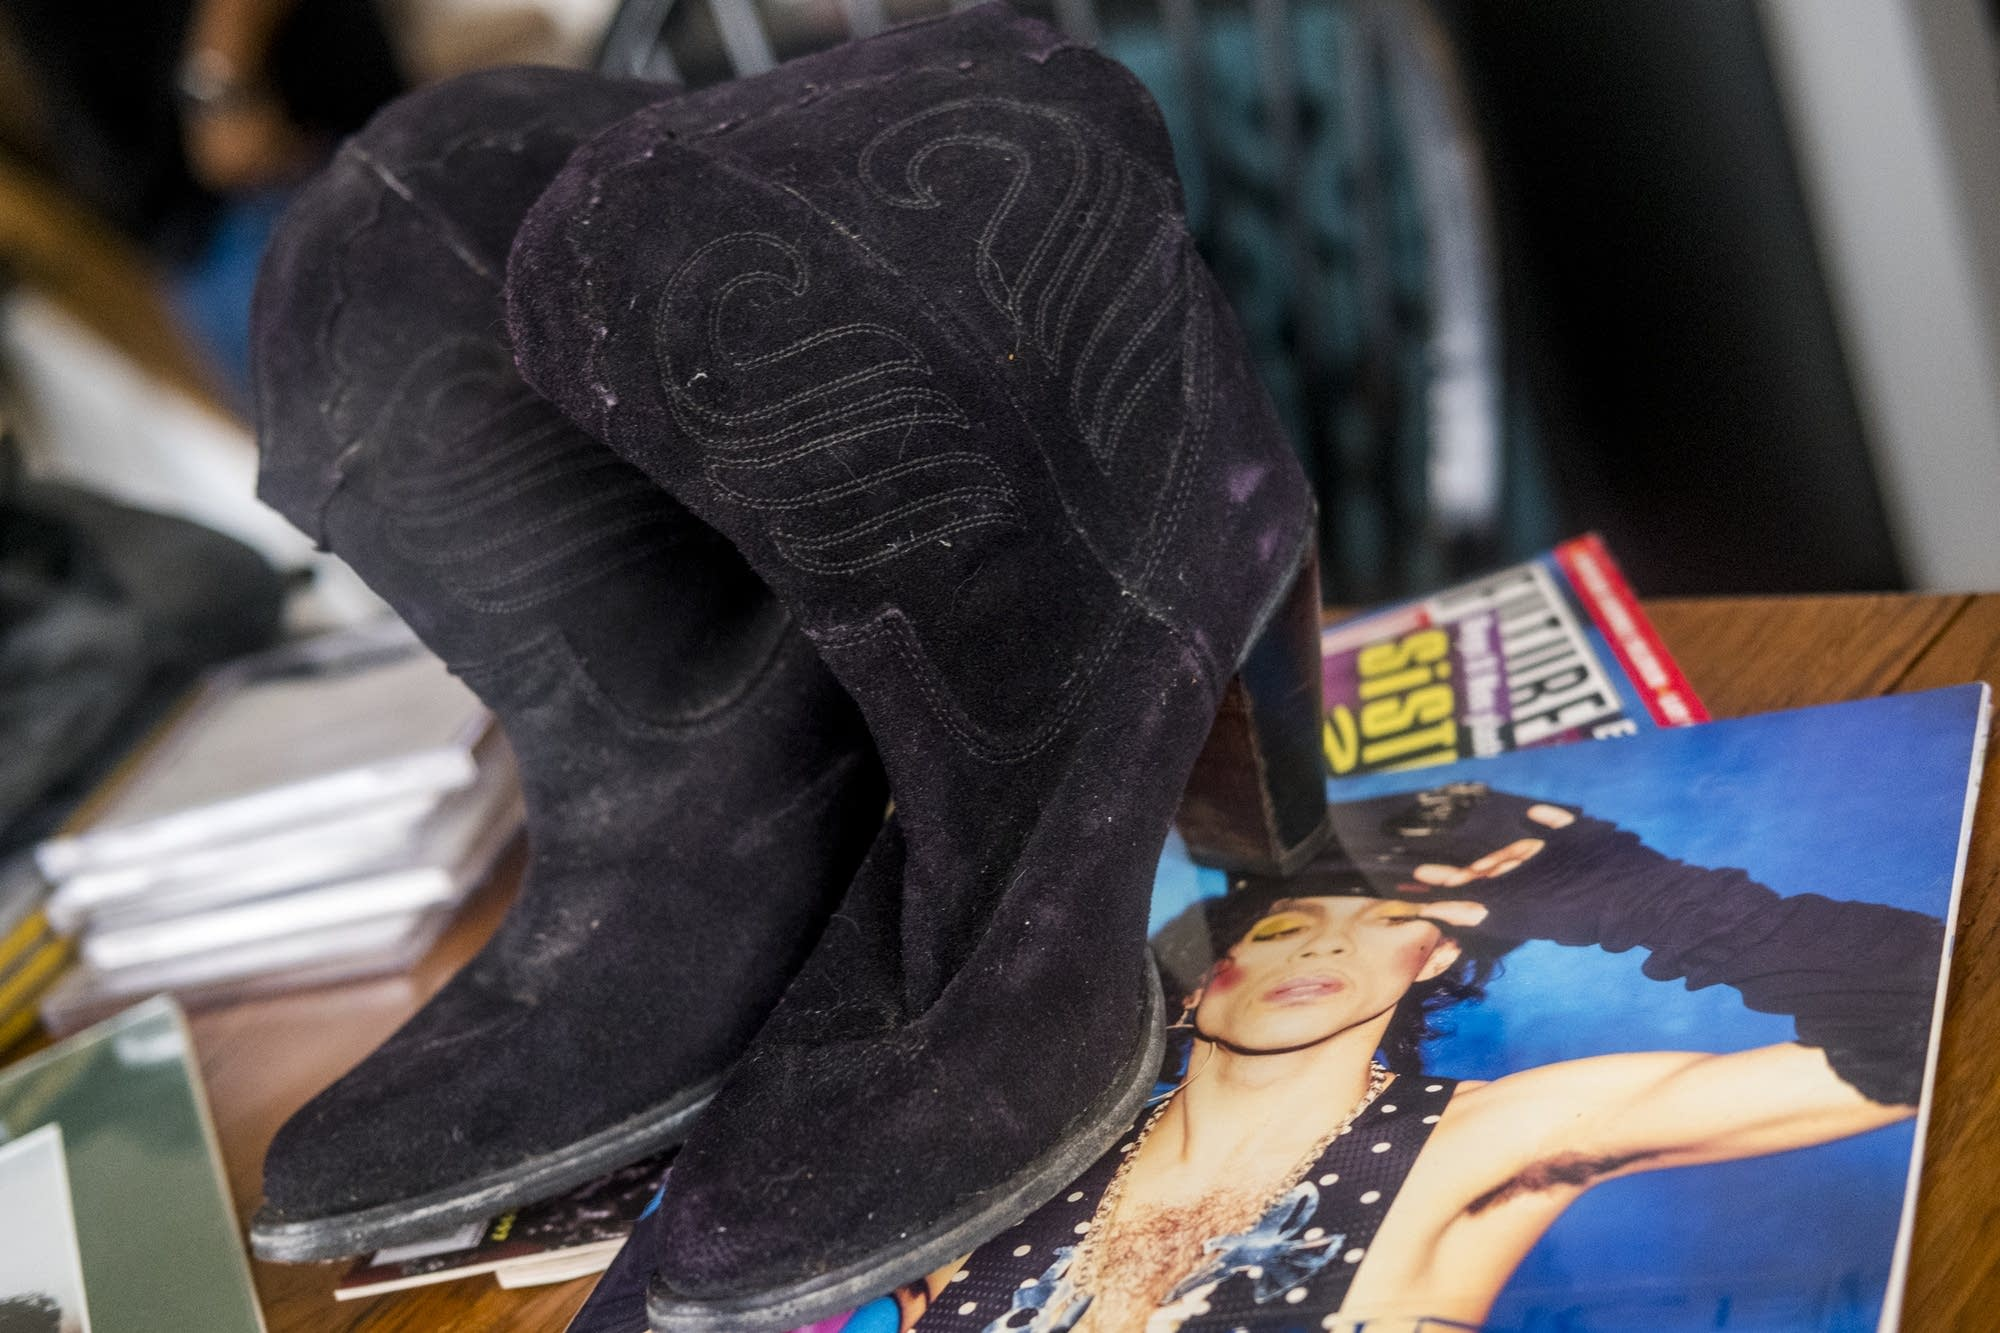 A pair of boots worn by Prince.